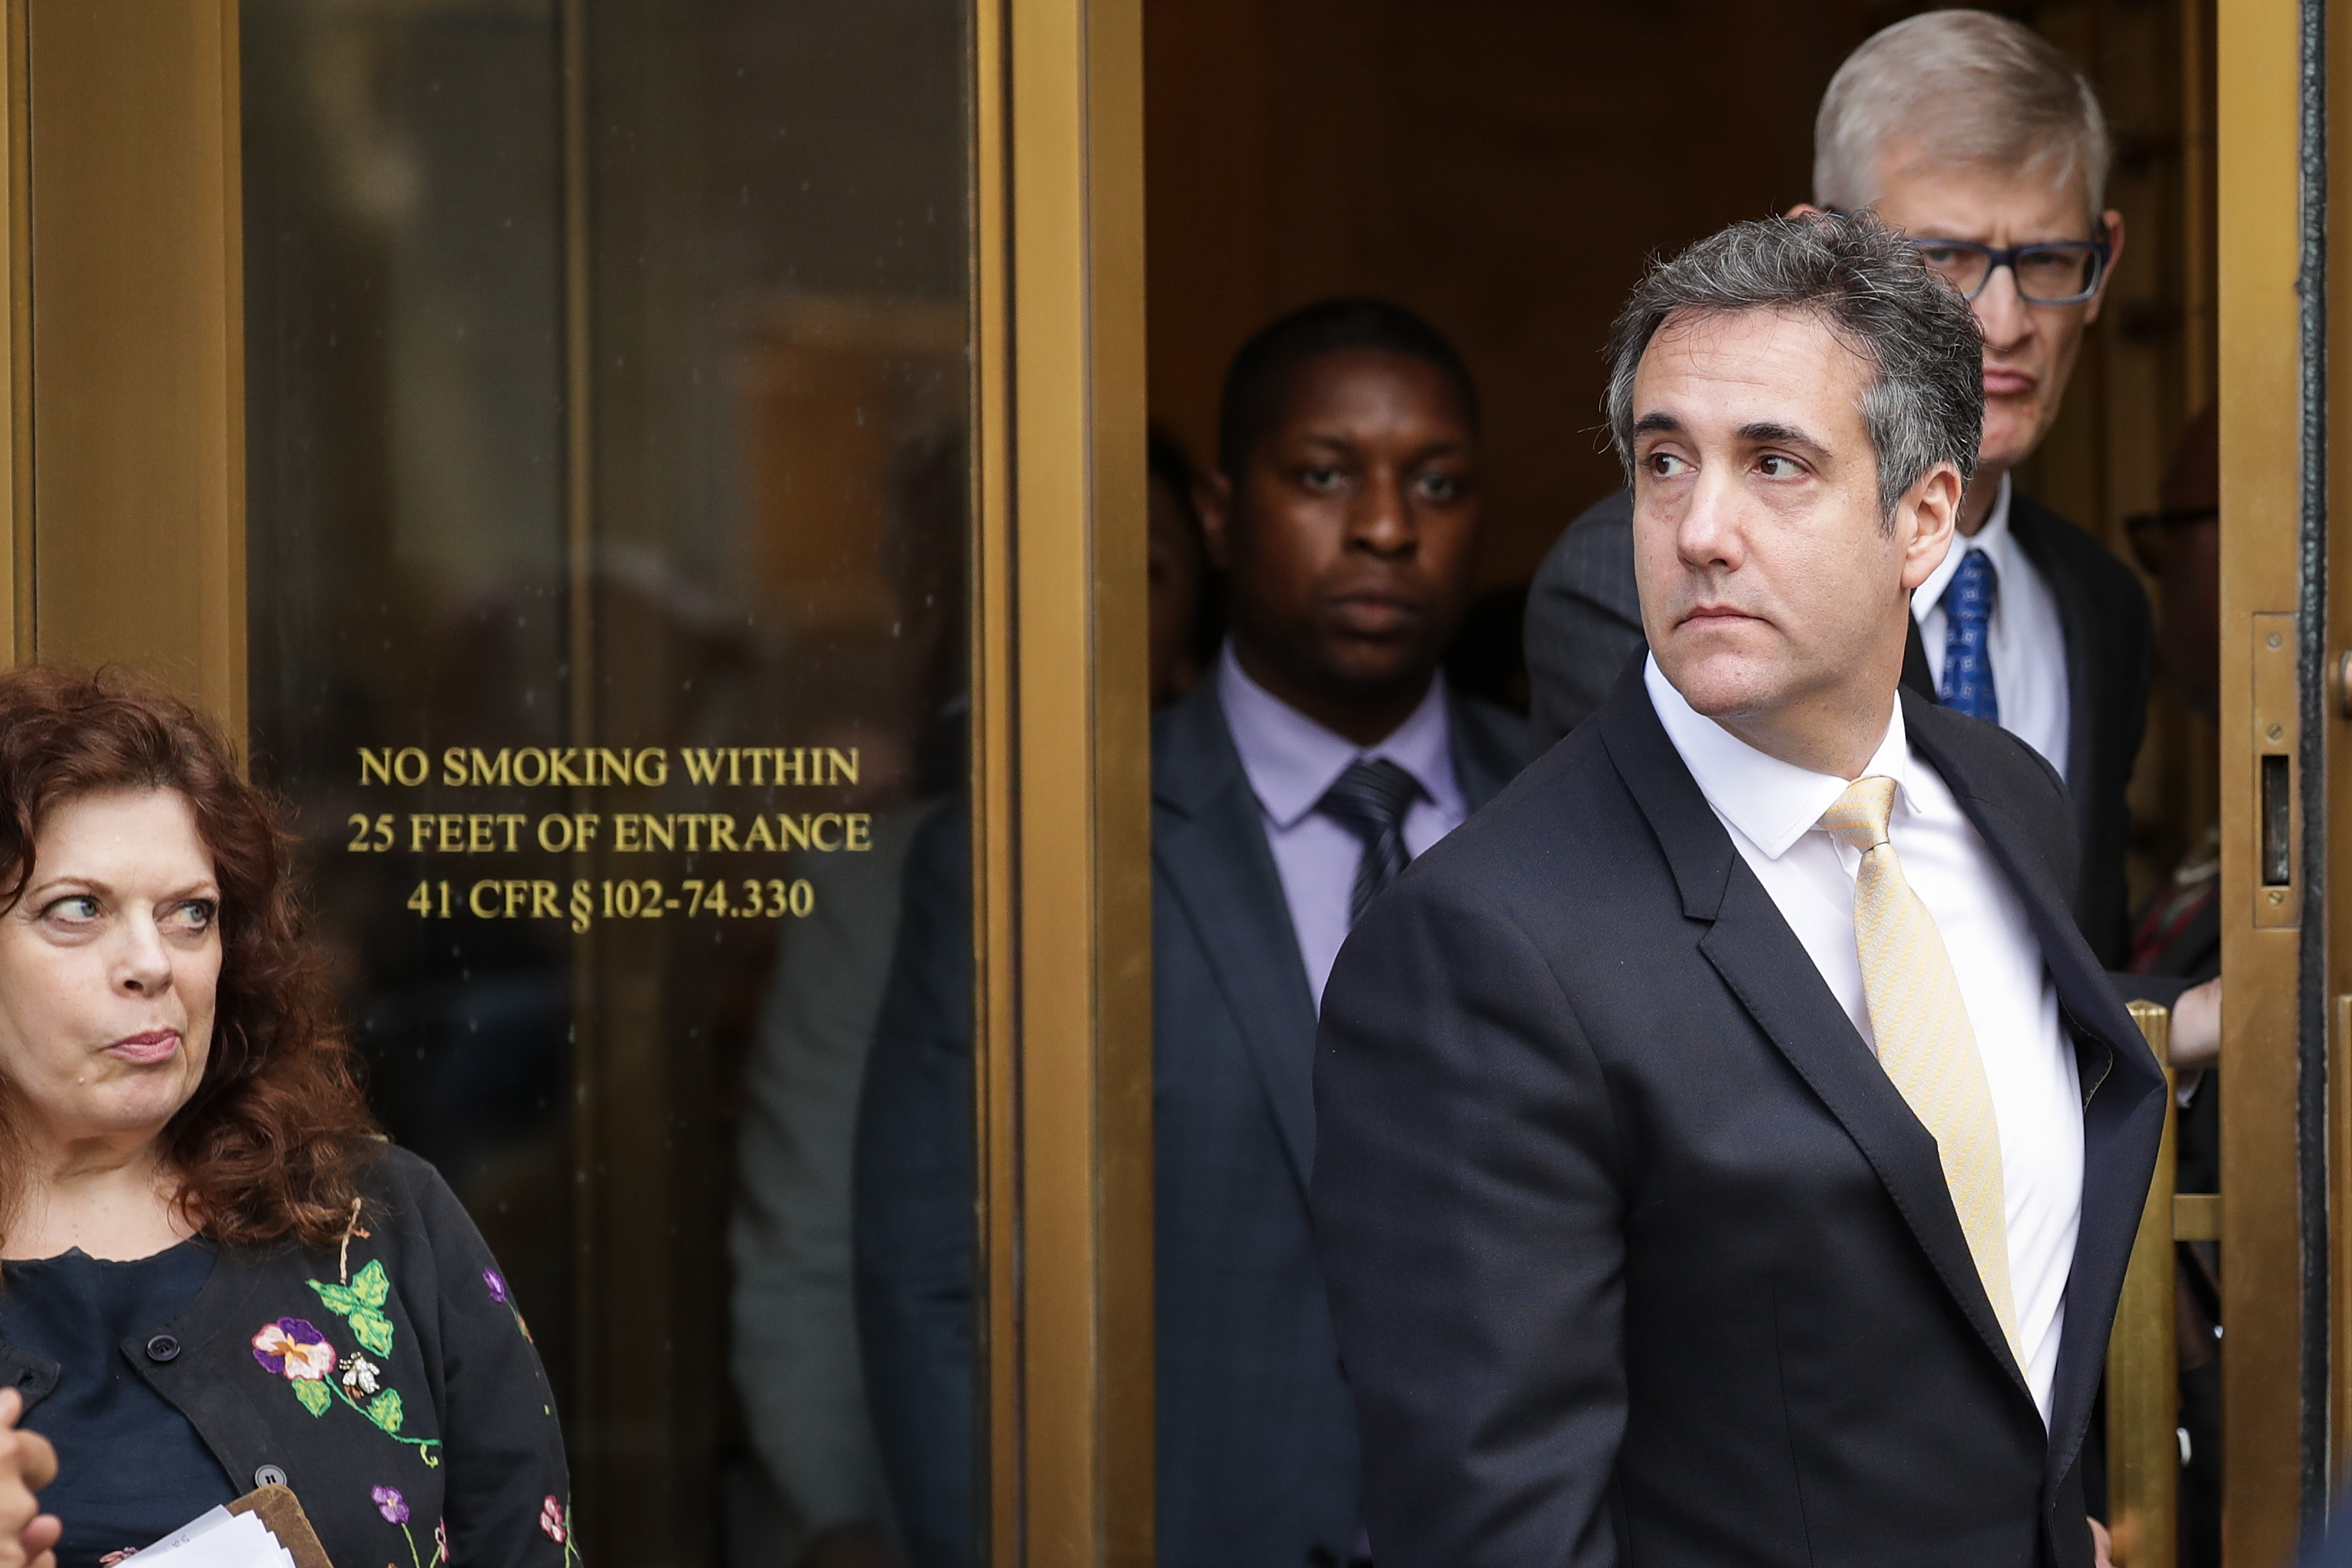 Former Trump Lawyer Michael Cohen Enters Plea Deal Over Tax And Bank Fraud And Campaign Finance Violations